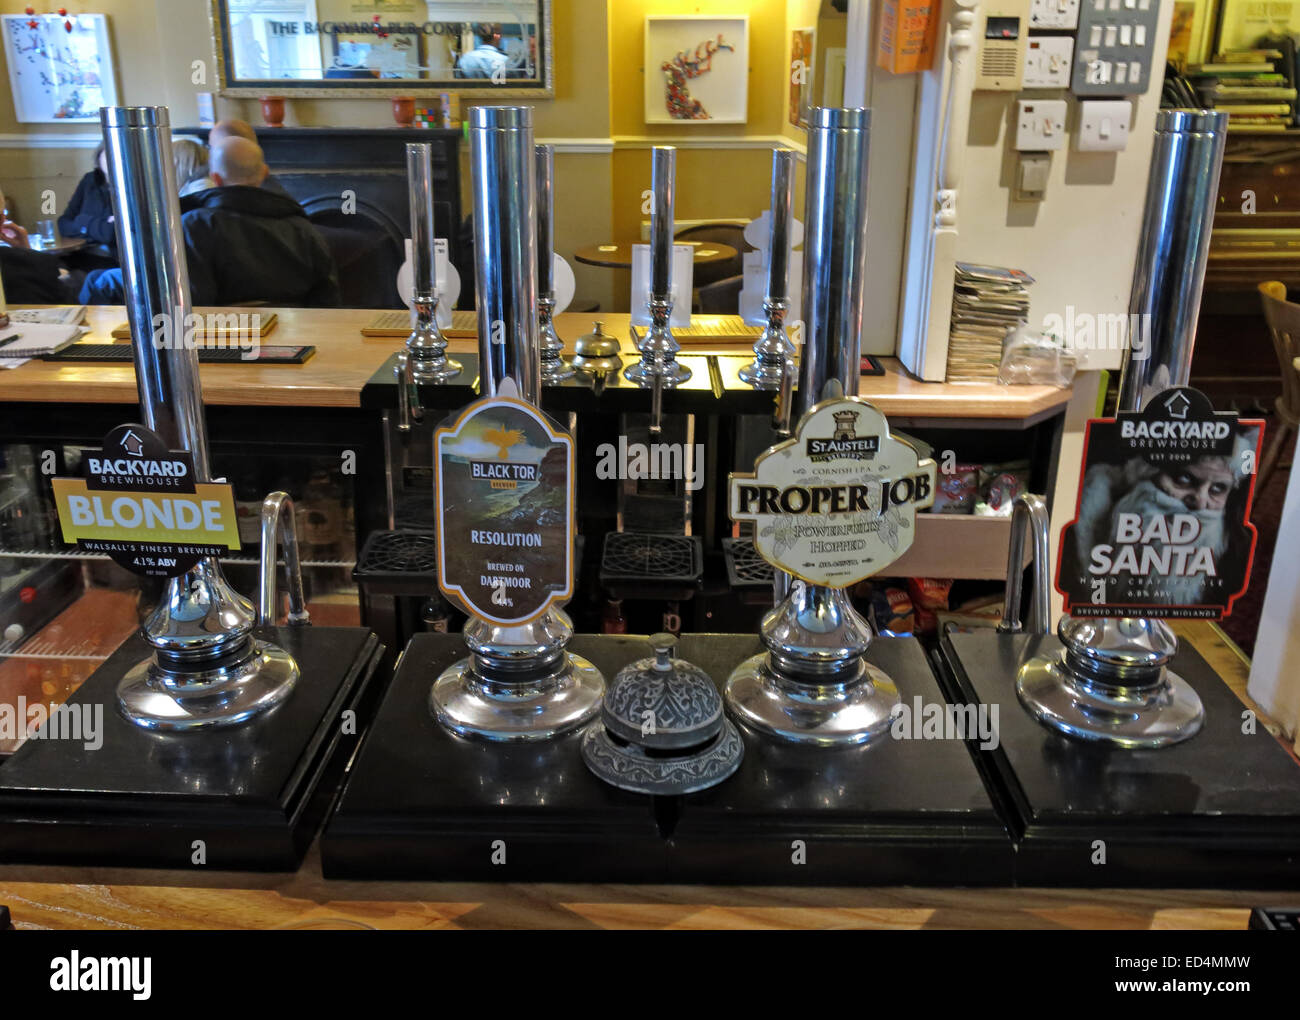 Backhouse Brewery Walsall ales, on bar at The Fountain, Lower Forster Street, Walsall, West Midlands, England, UK - Stock Image